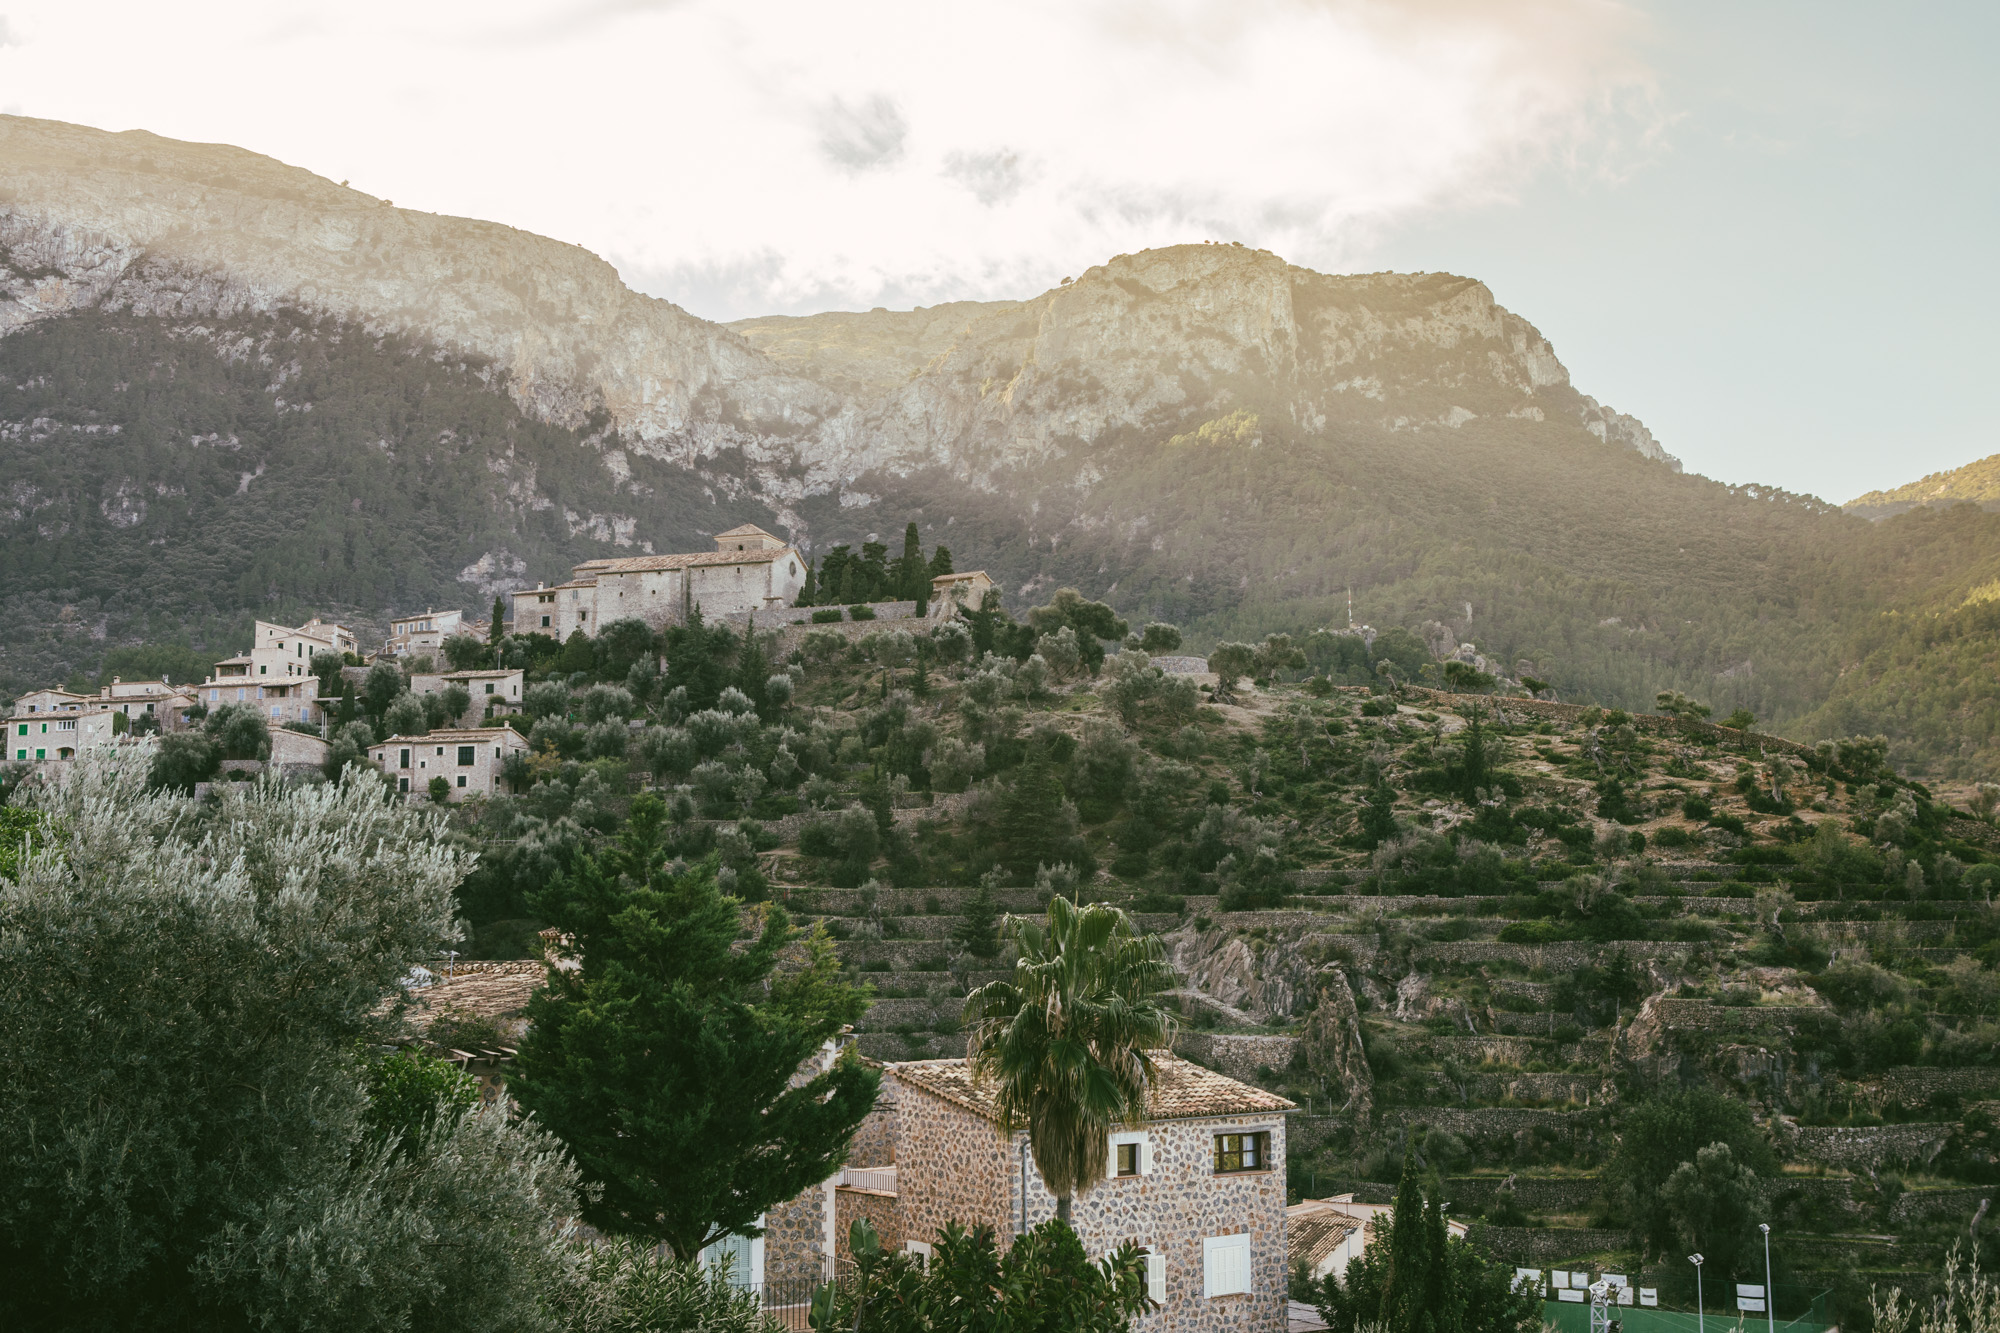 A view of part of Deiá as the sunlight begins to spill over the mountains.